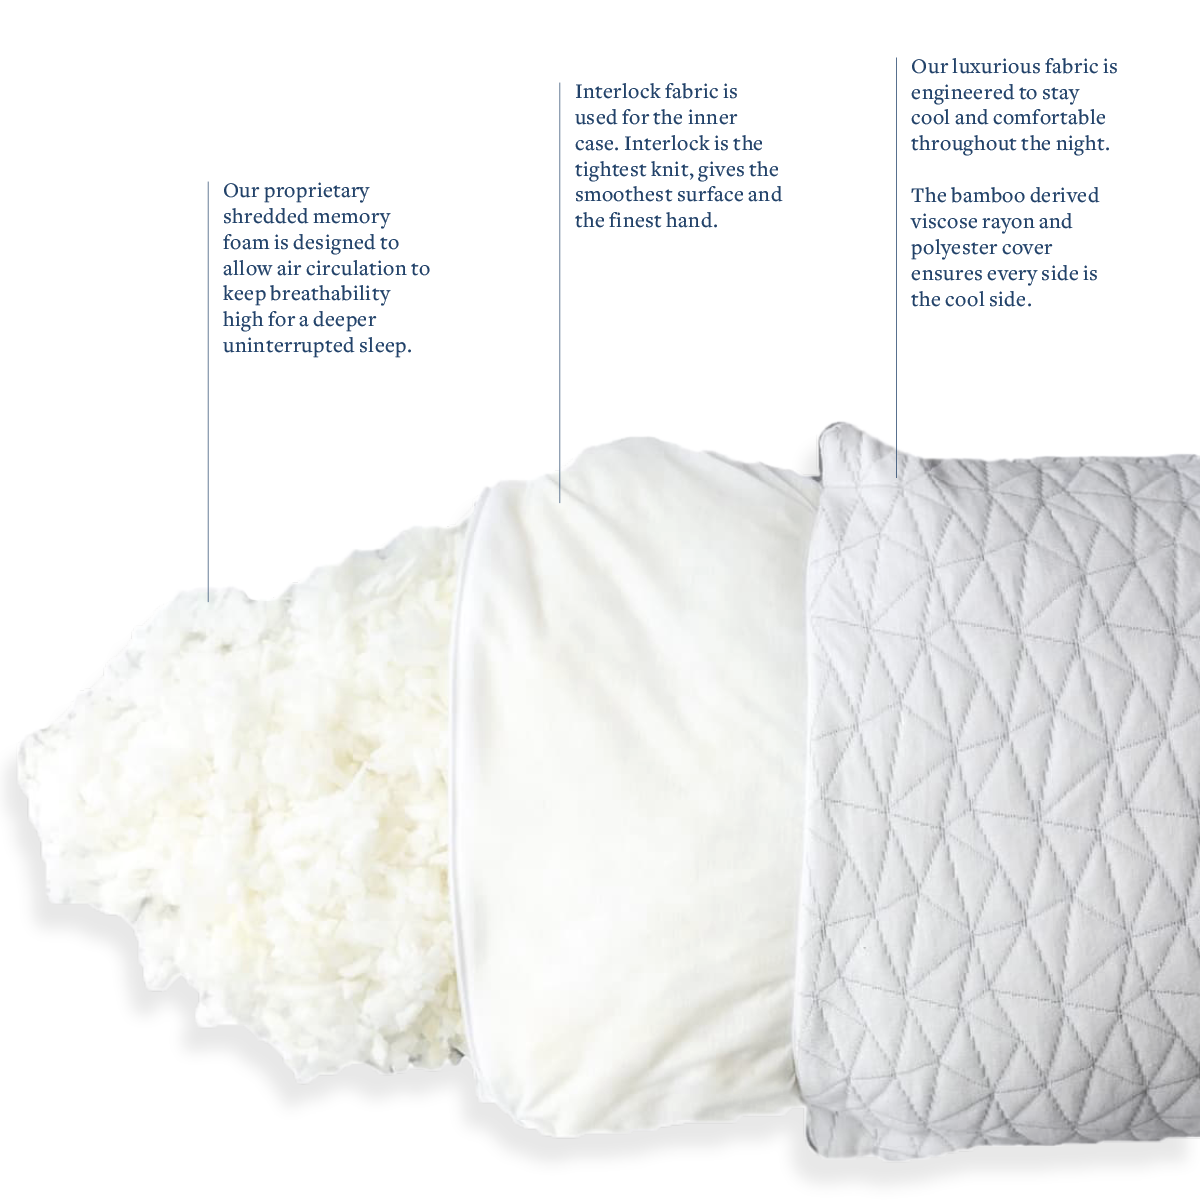 Firm Memory Foam Pillow The Original Finds Pillows Memory Foam Home Goods